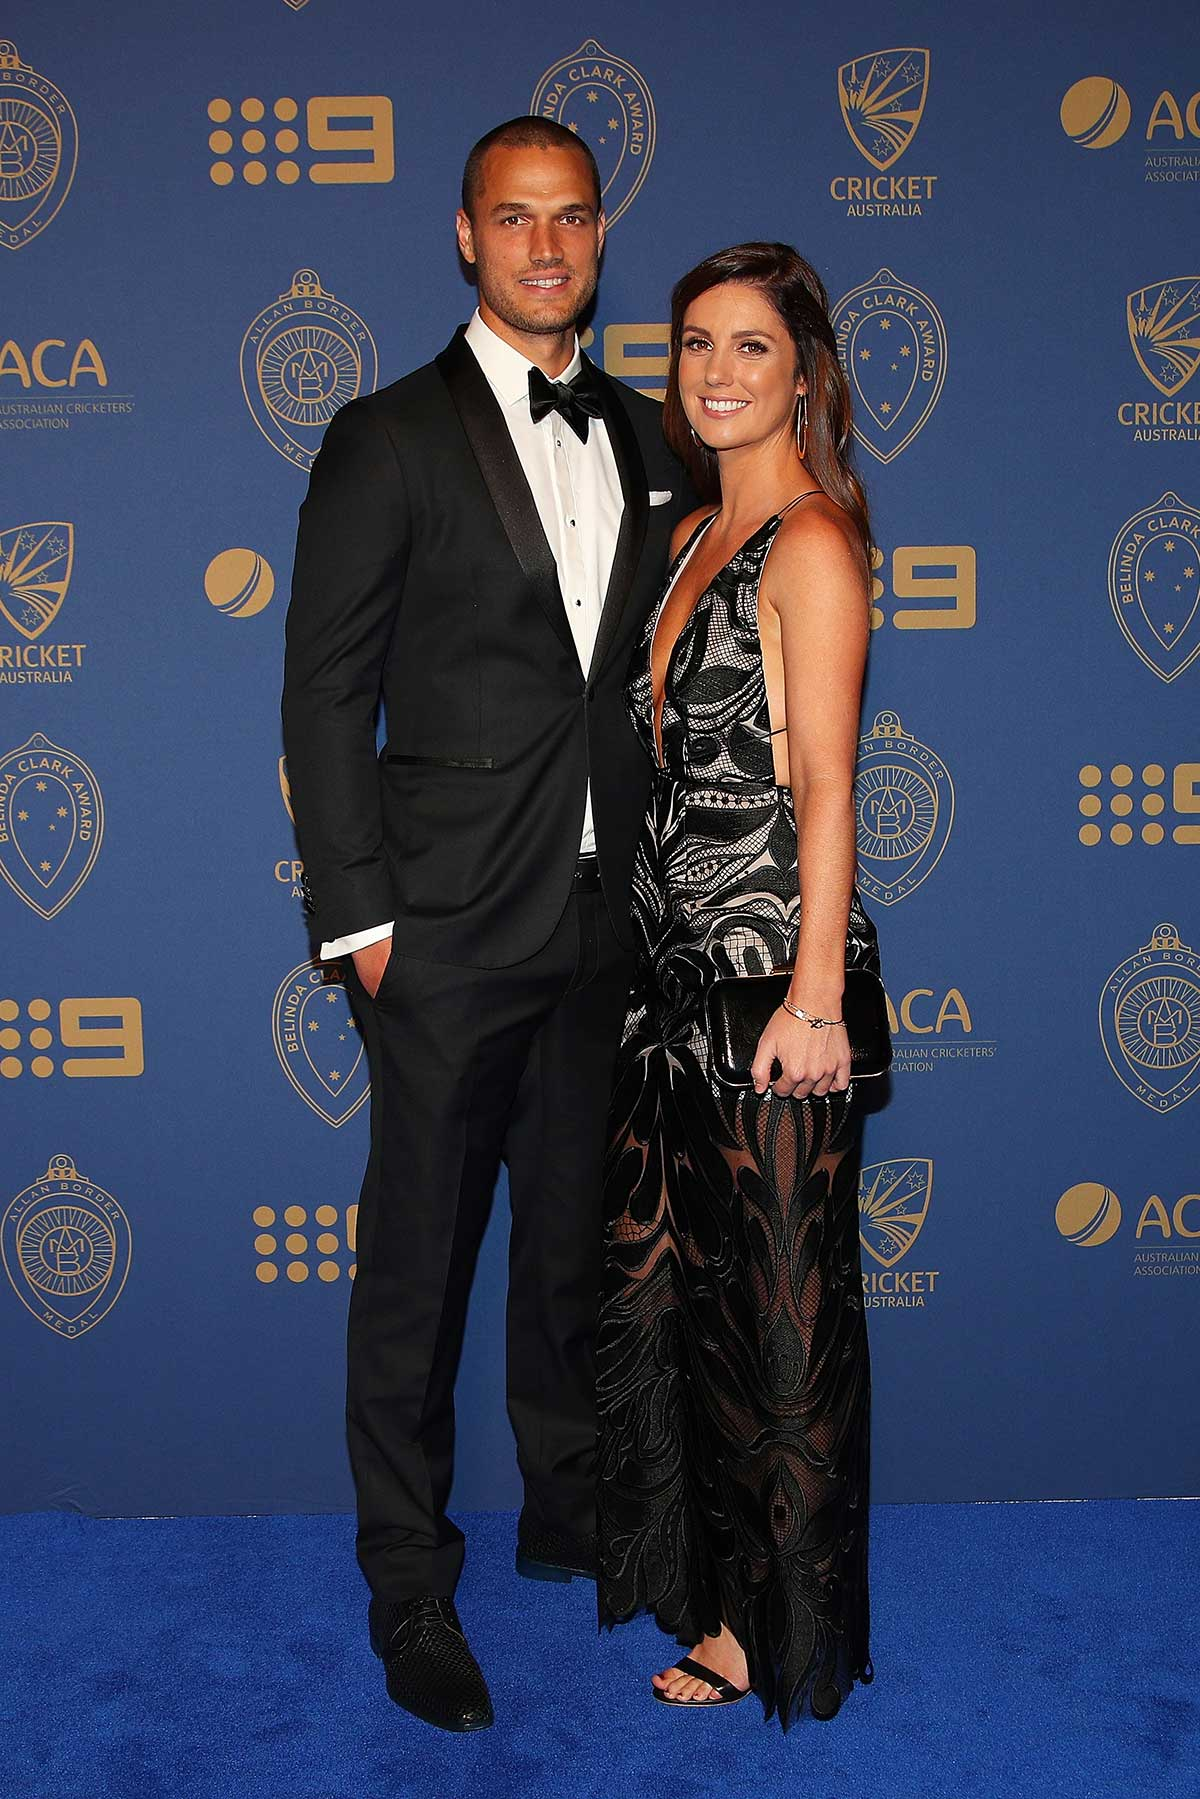 Nathan Coulter-Nile and partner Shani Blay // Getty